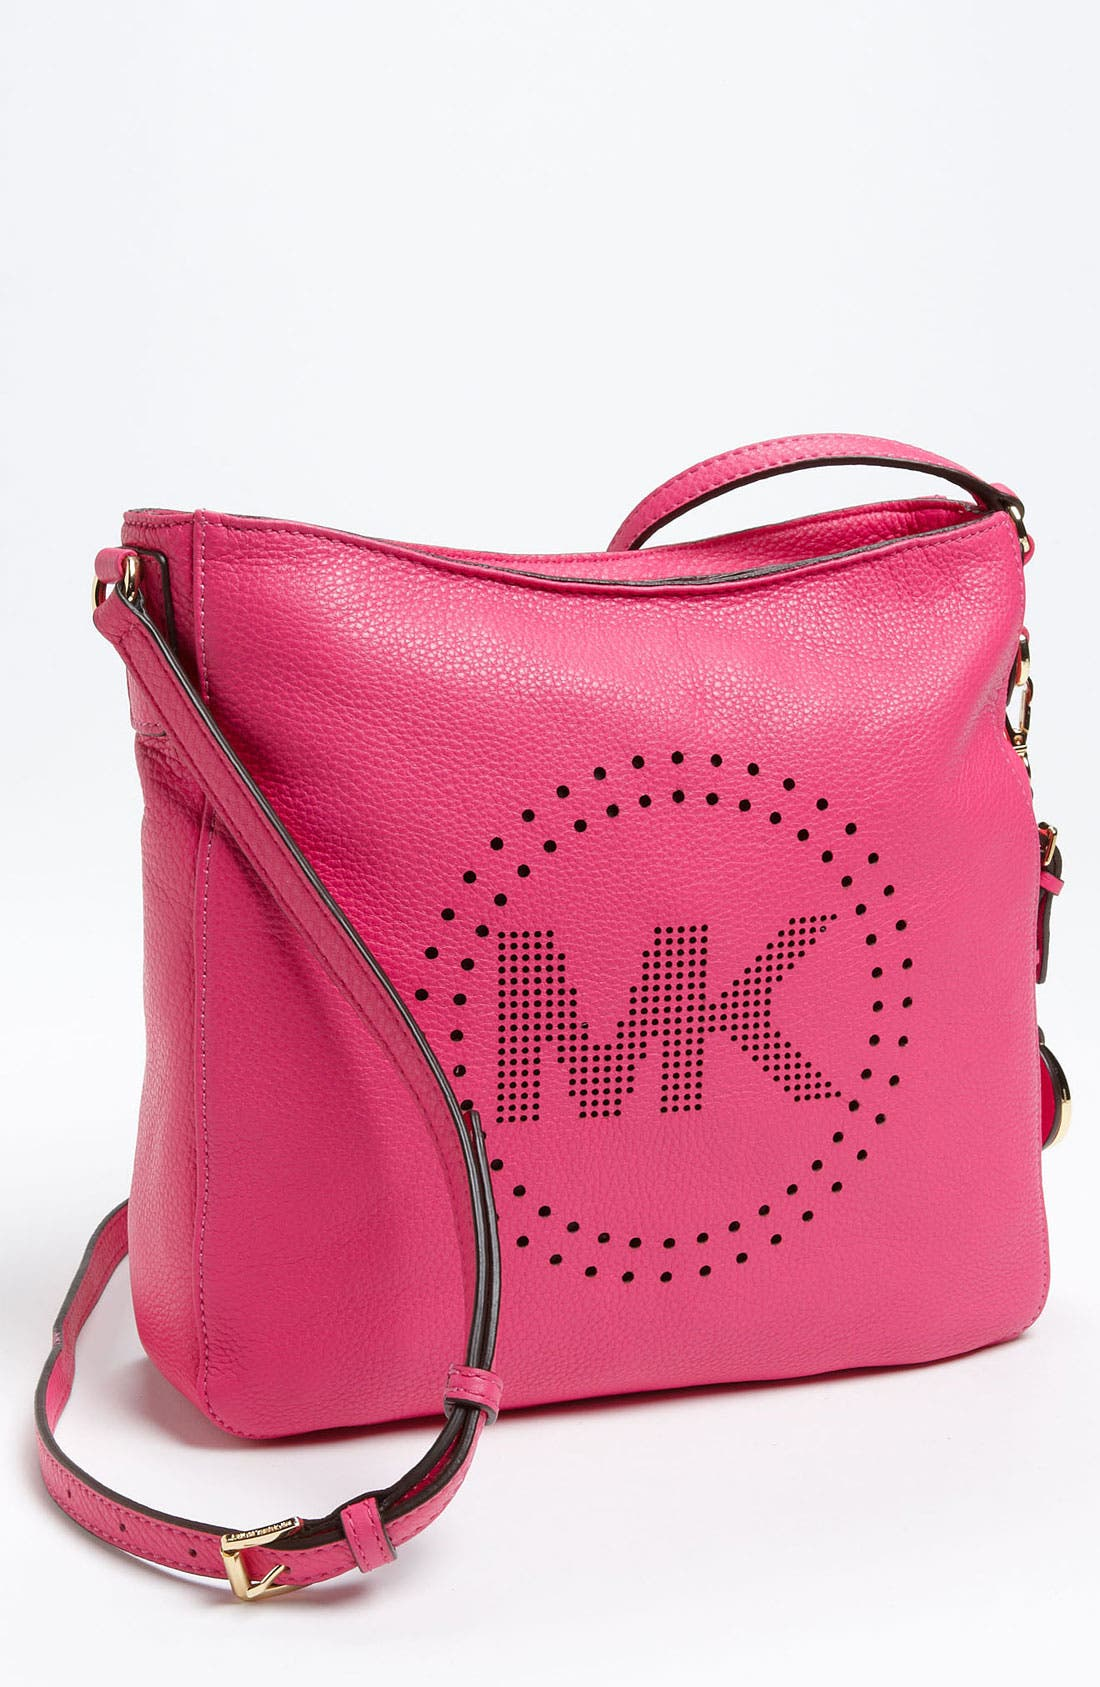 Main Image - MICHAEL Michael Kors 'Perforated MK - Large' Leather Messenger Bag